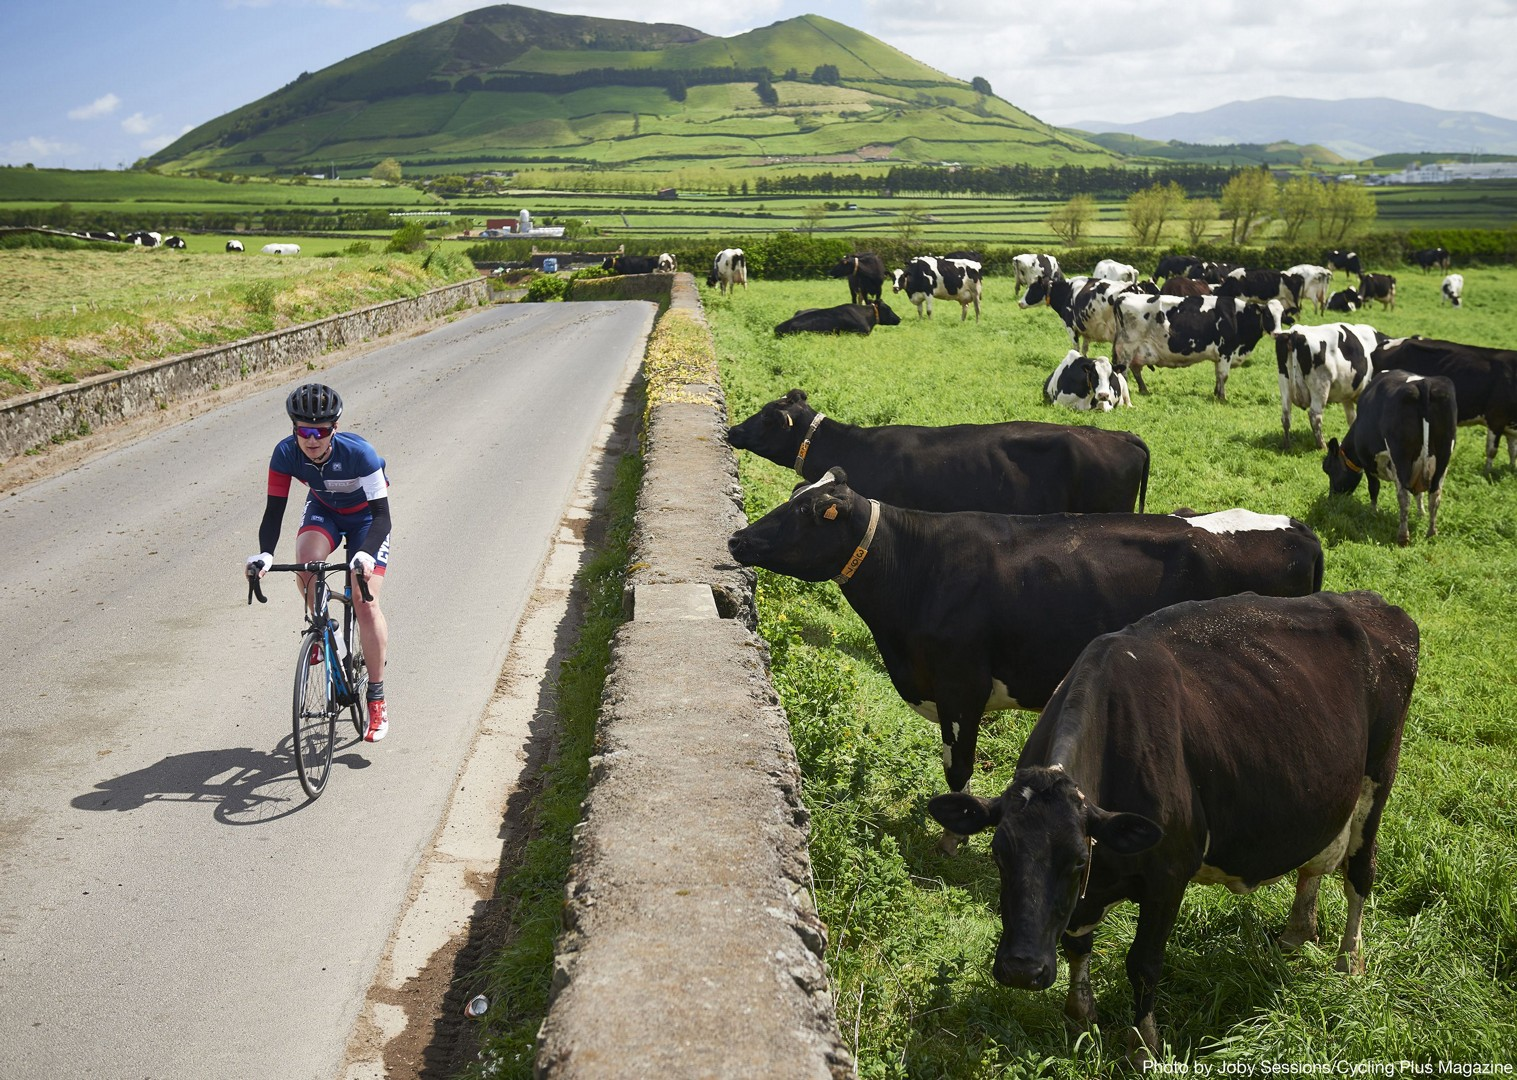 lost-world-of-sao-miguel-guided-road-cycling-holiday-the-azores.jpg - The Azores - Lost World of Sao Miguel - Road Cycling